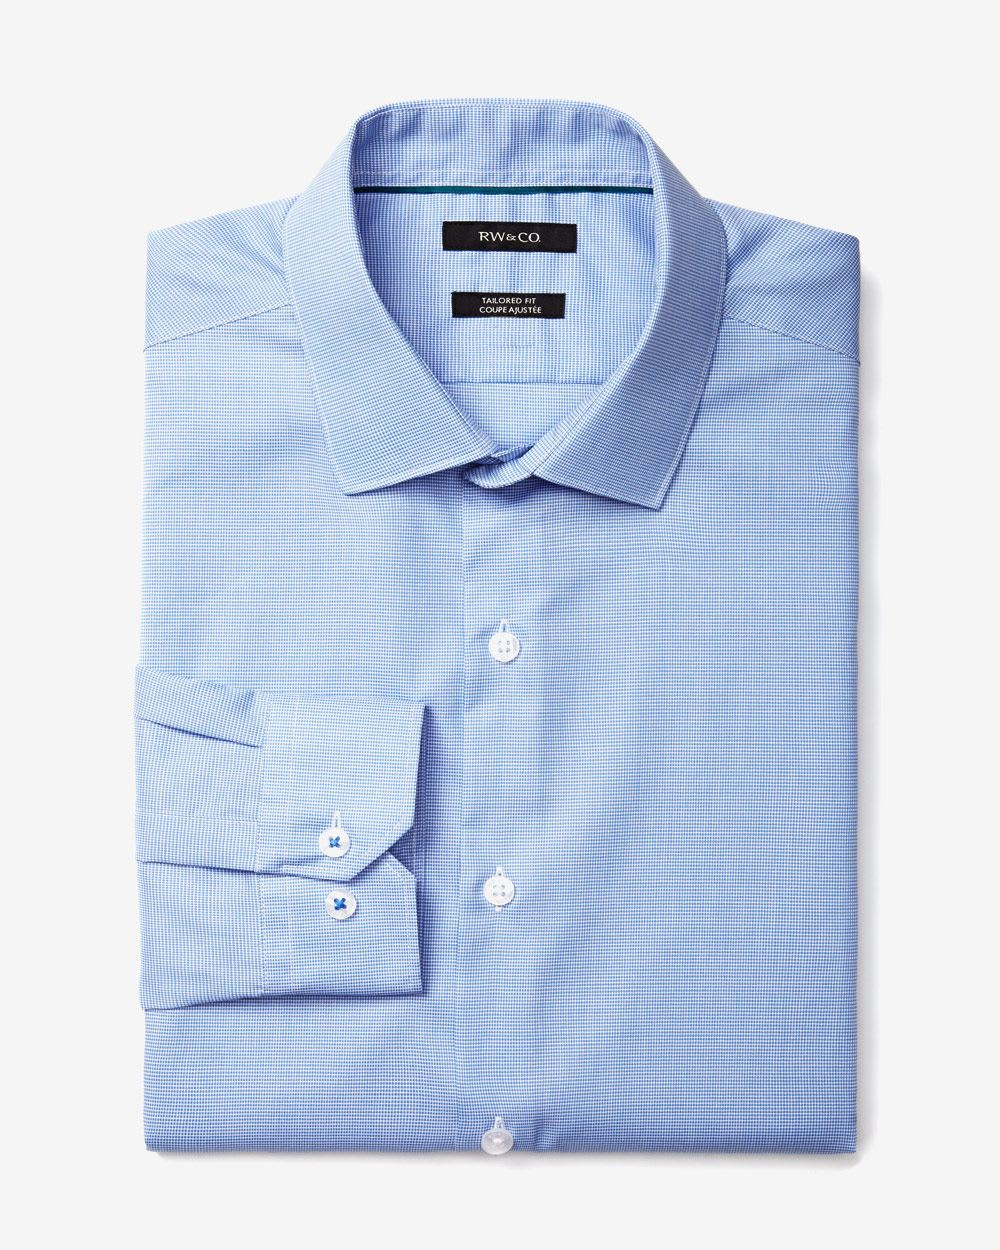 Two tone tailored fit dress shirt rw co for Tailoring a dress shirt